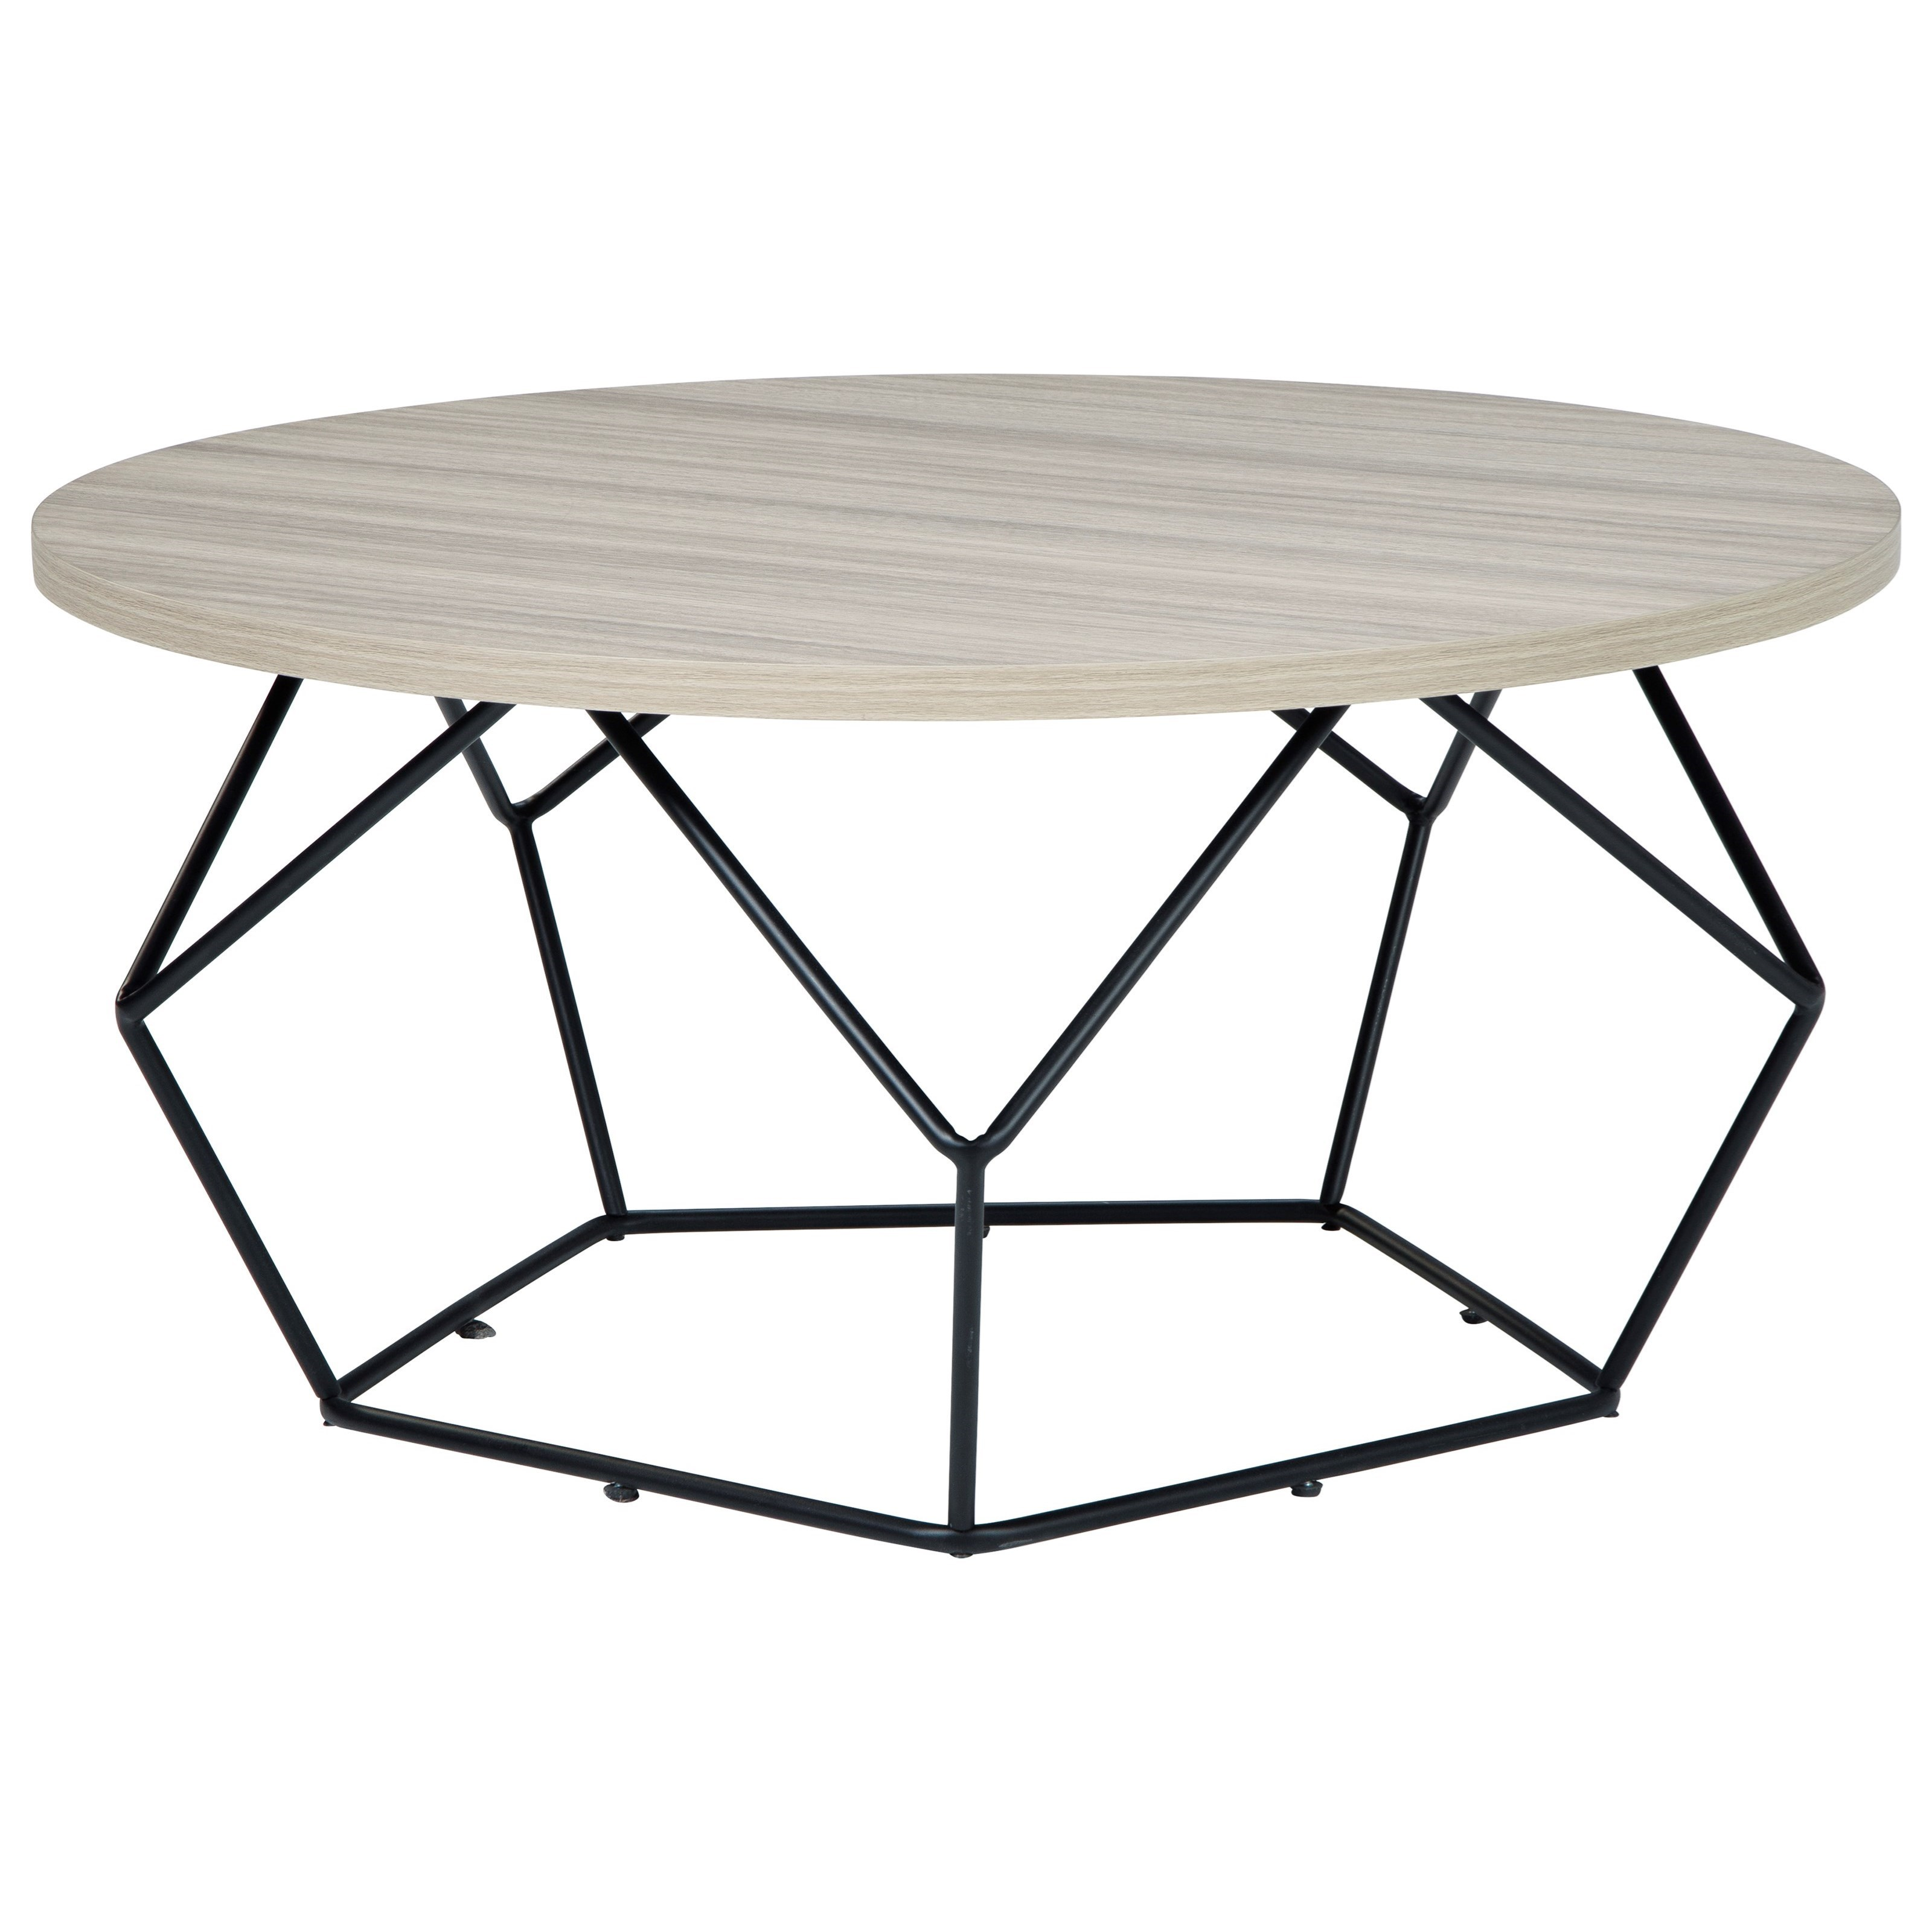 Waylowe Round Cocktail Table by Signature Design by Ashley at Zak's Warehouse Clearance Center